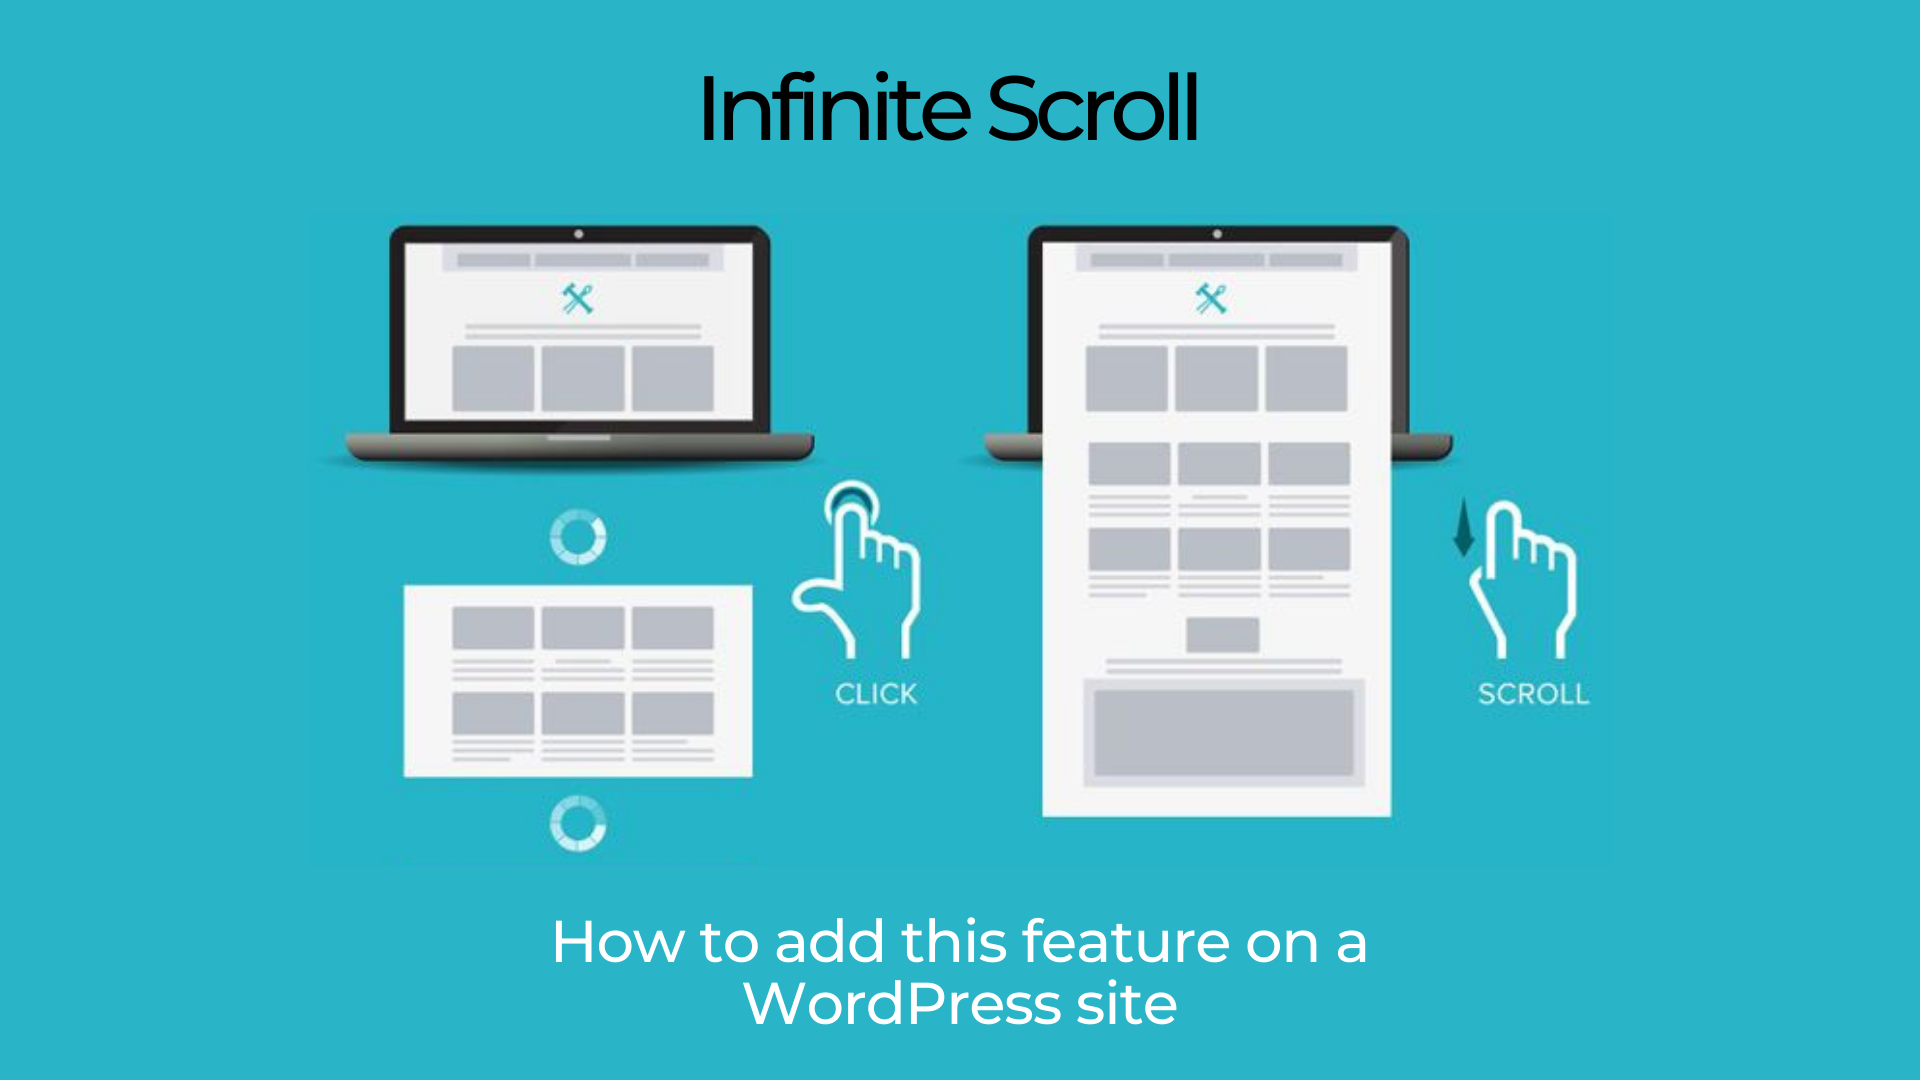 What is Infinite Scroll?